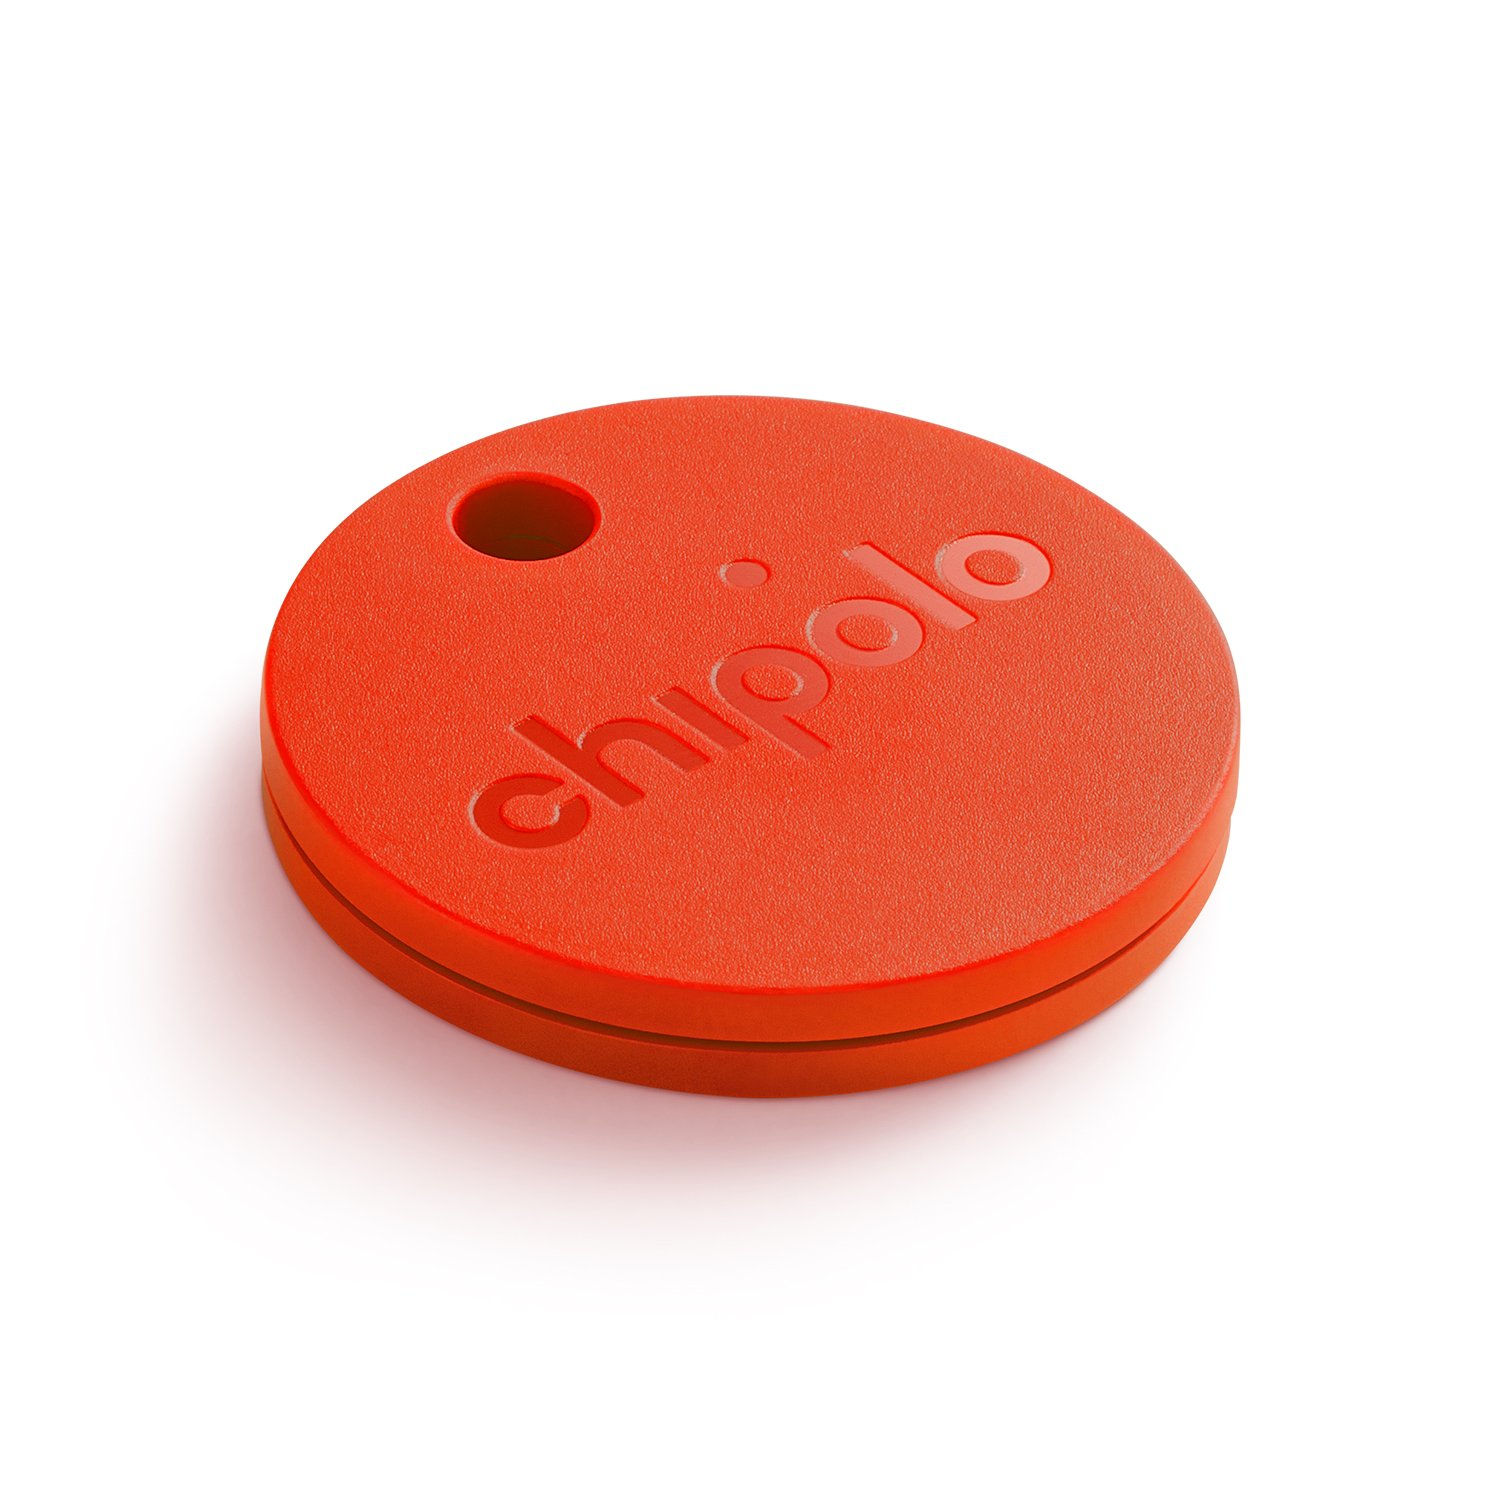 Chipolo PLUS Bluetooth Key Finder and Phone Finder - The loudest (100 dB) - Red